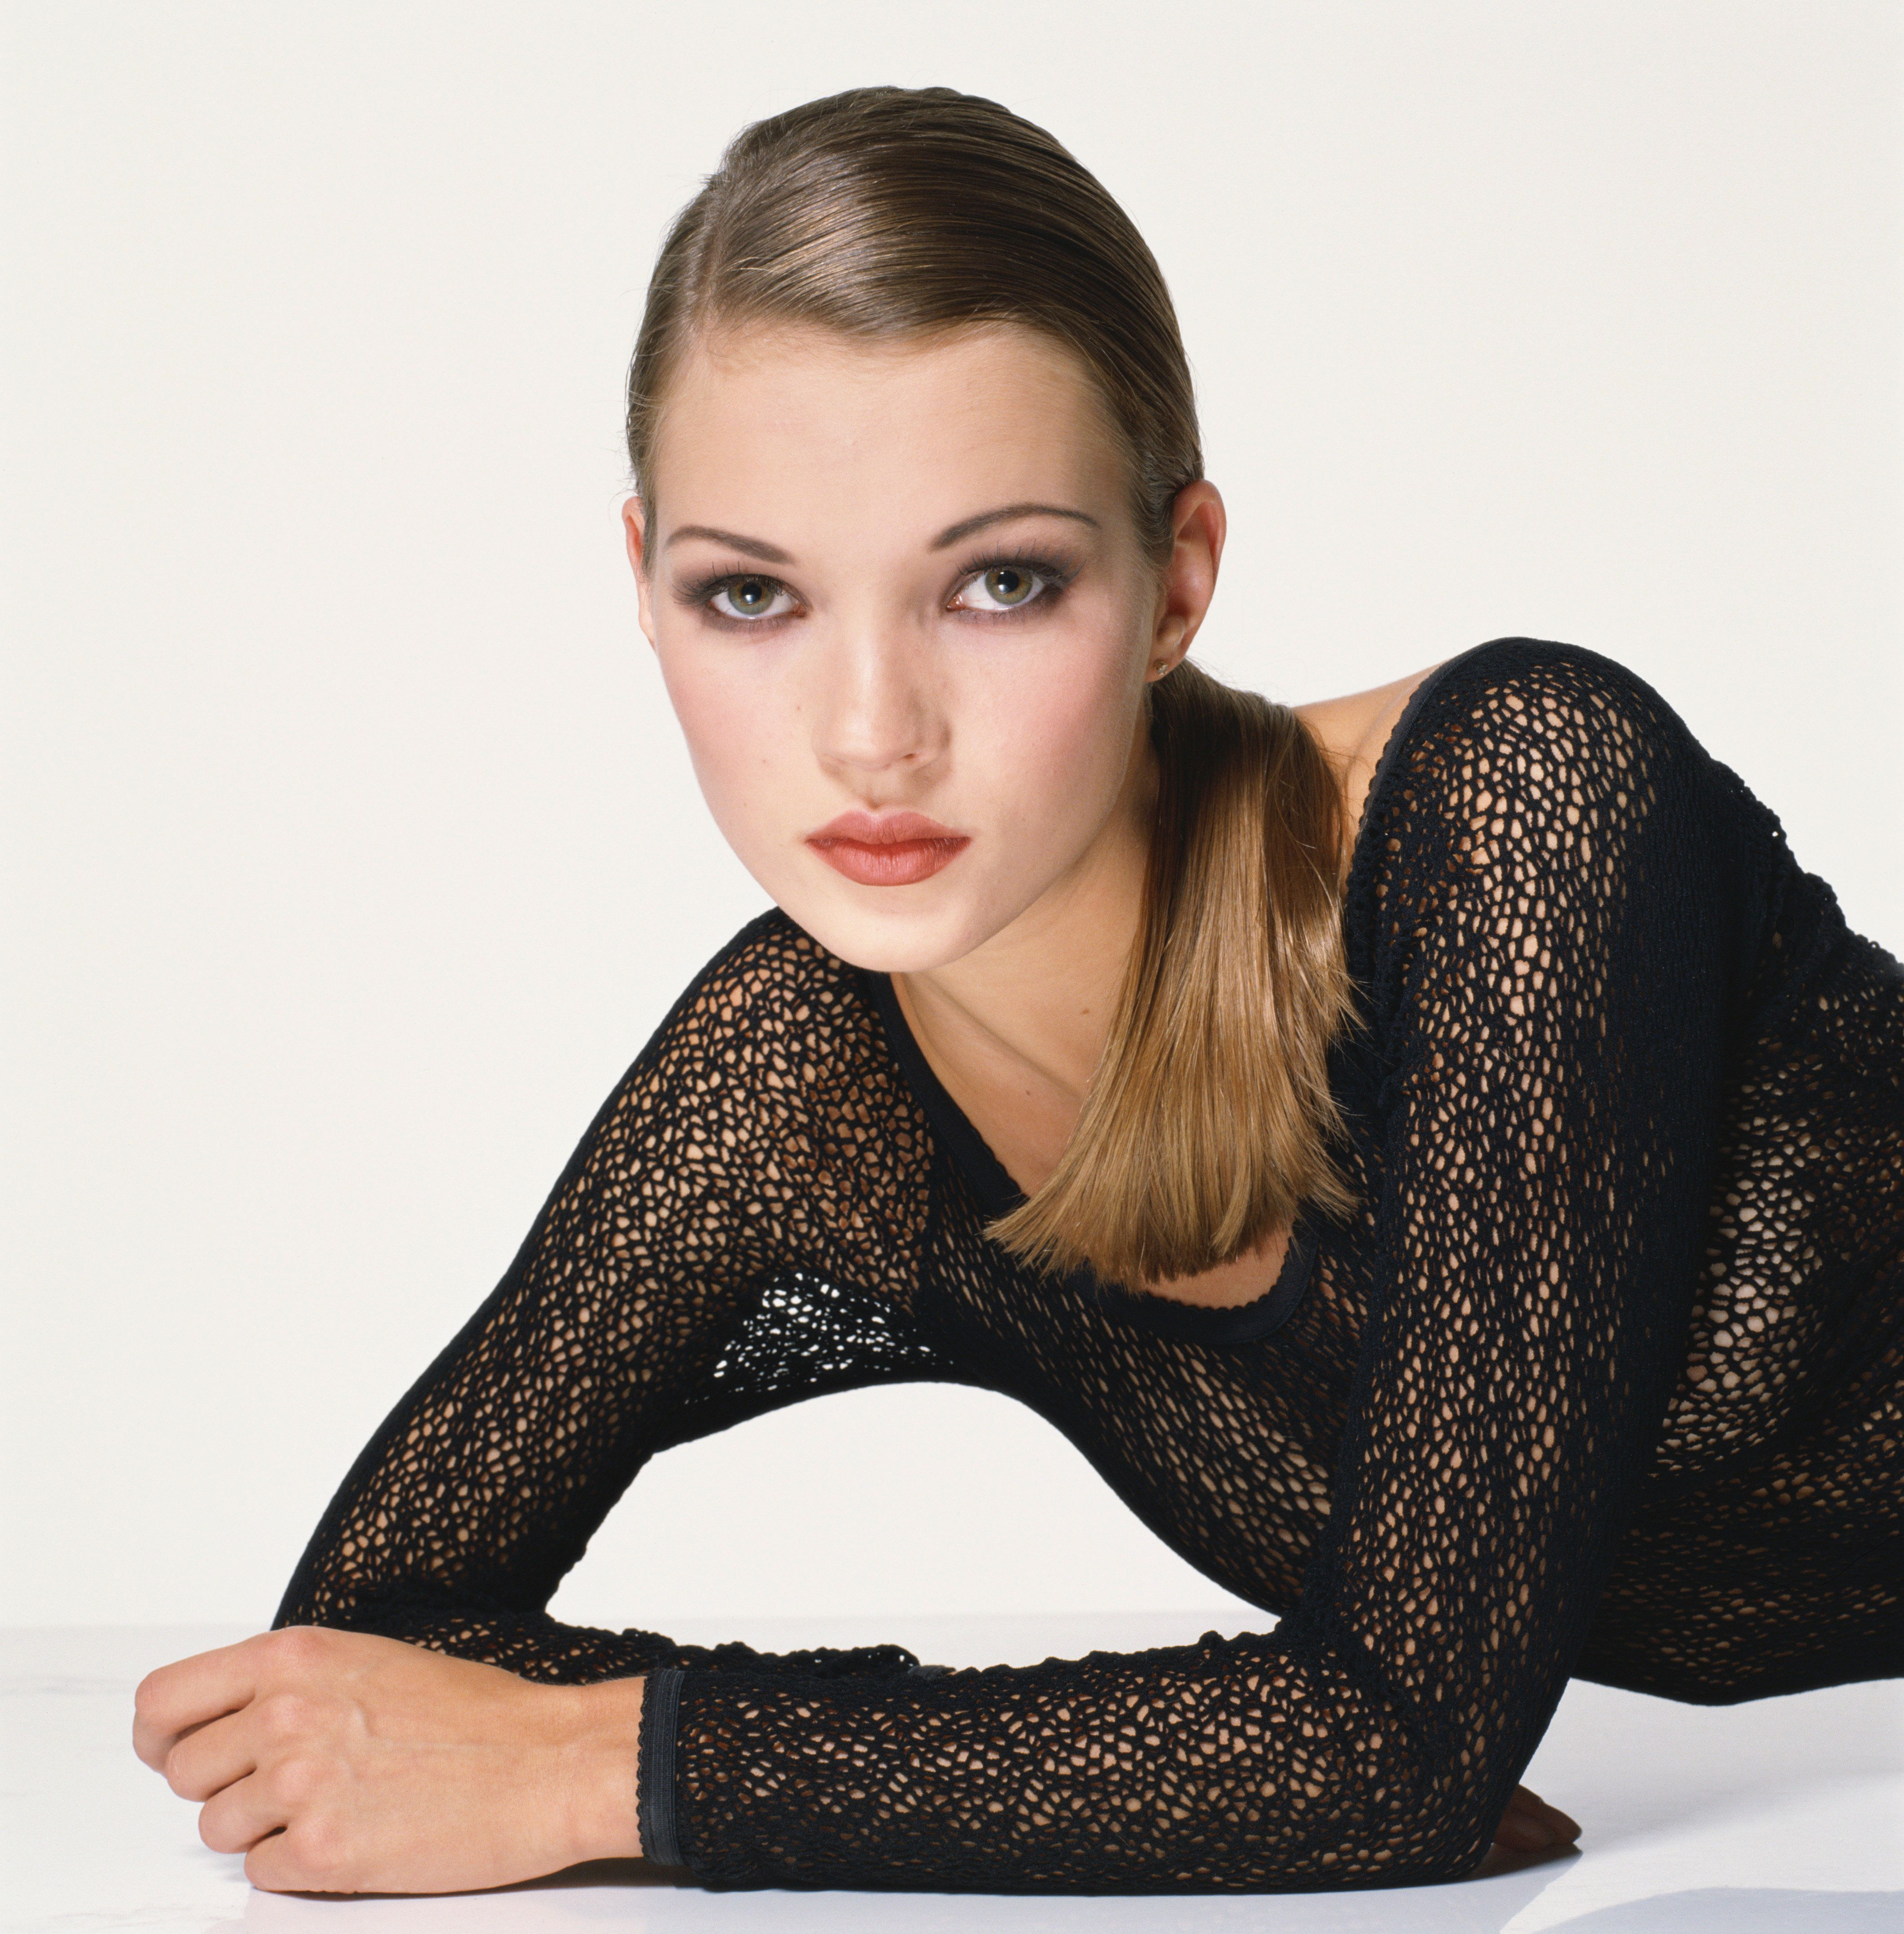 English supermodel Kate Moss, wearing a knitted black body stocking. (Photo by Terry O'Neill/Getty Images)